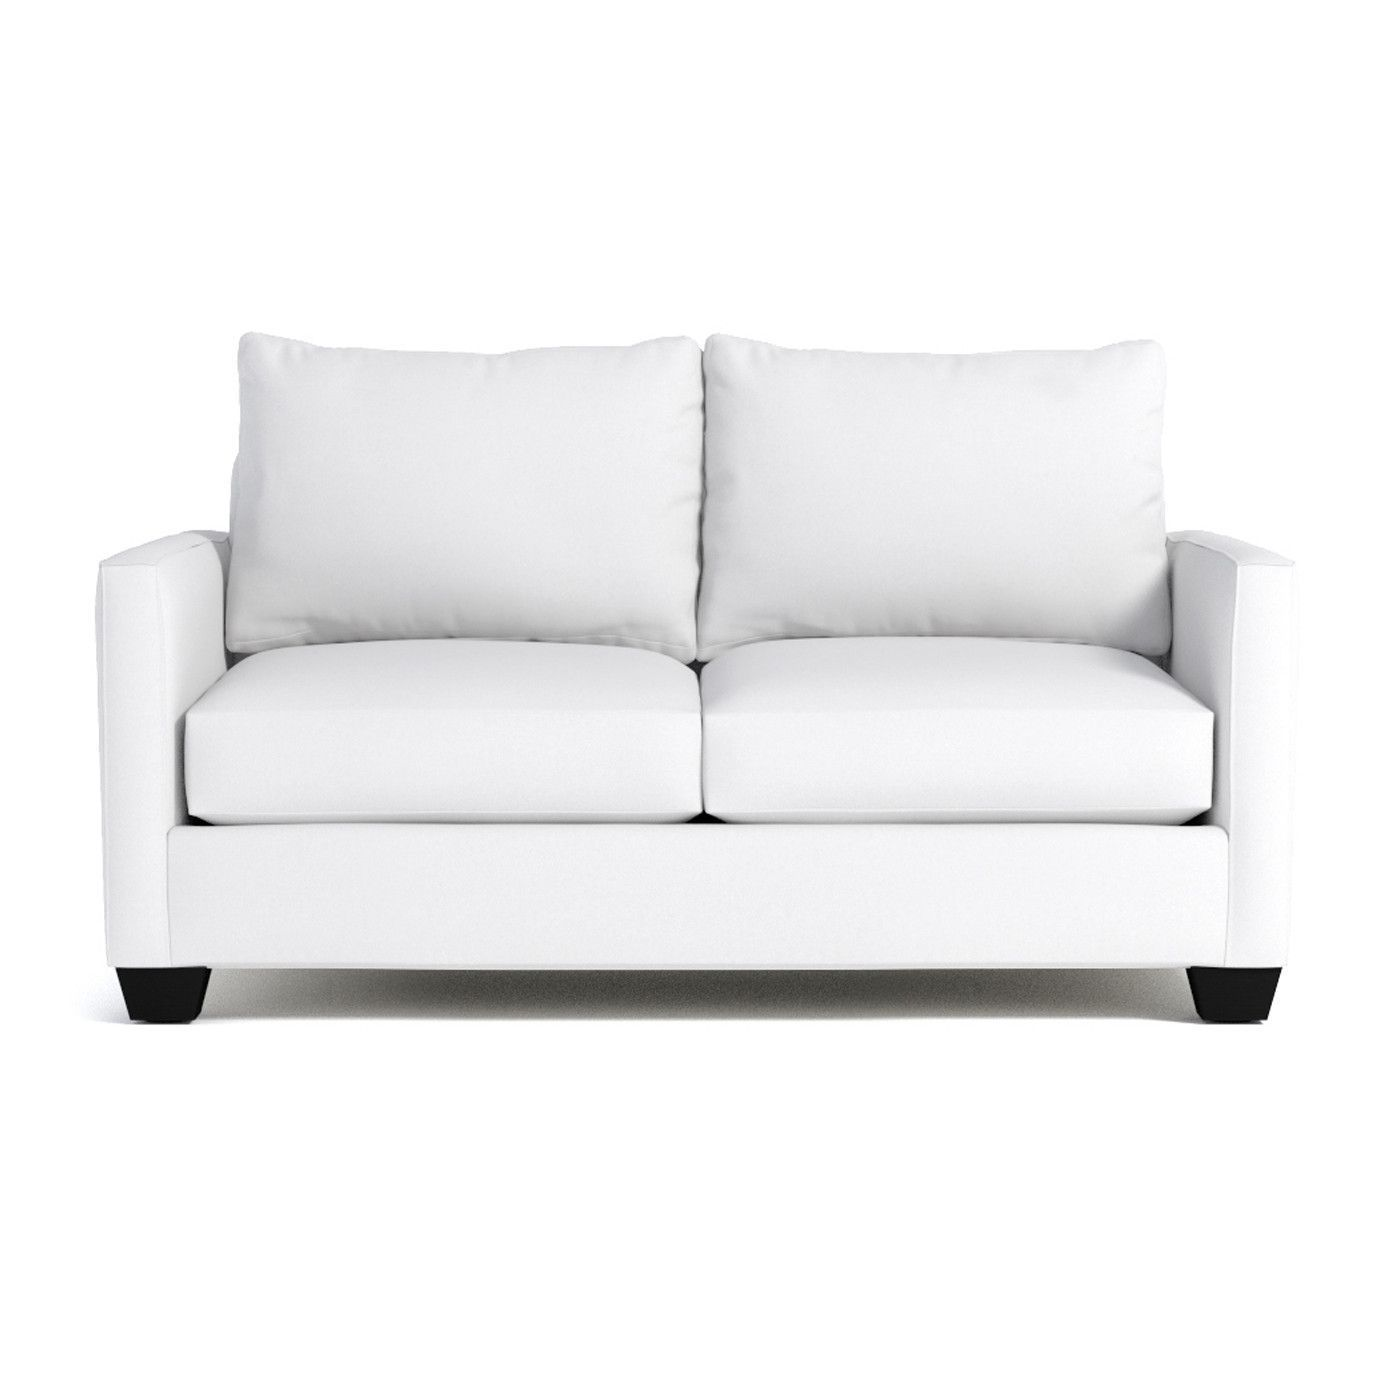 Tuxedo Apartment Size Sleeper Sofa Leg Finish Pecan Sleeper